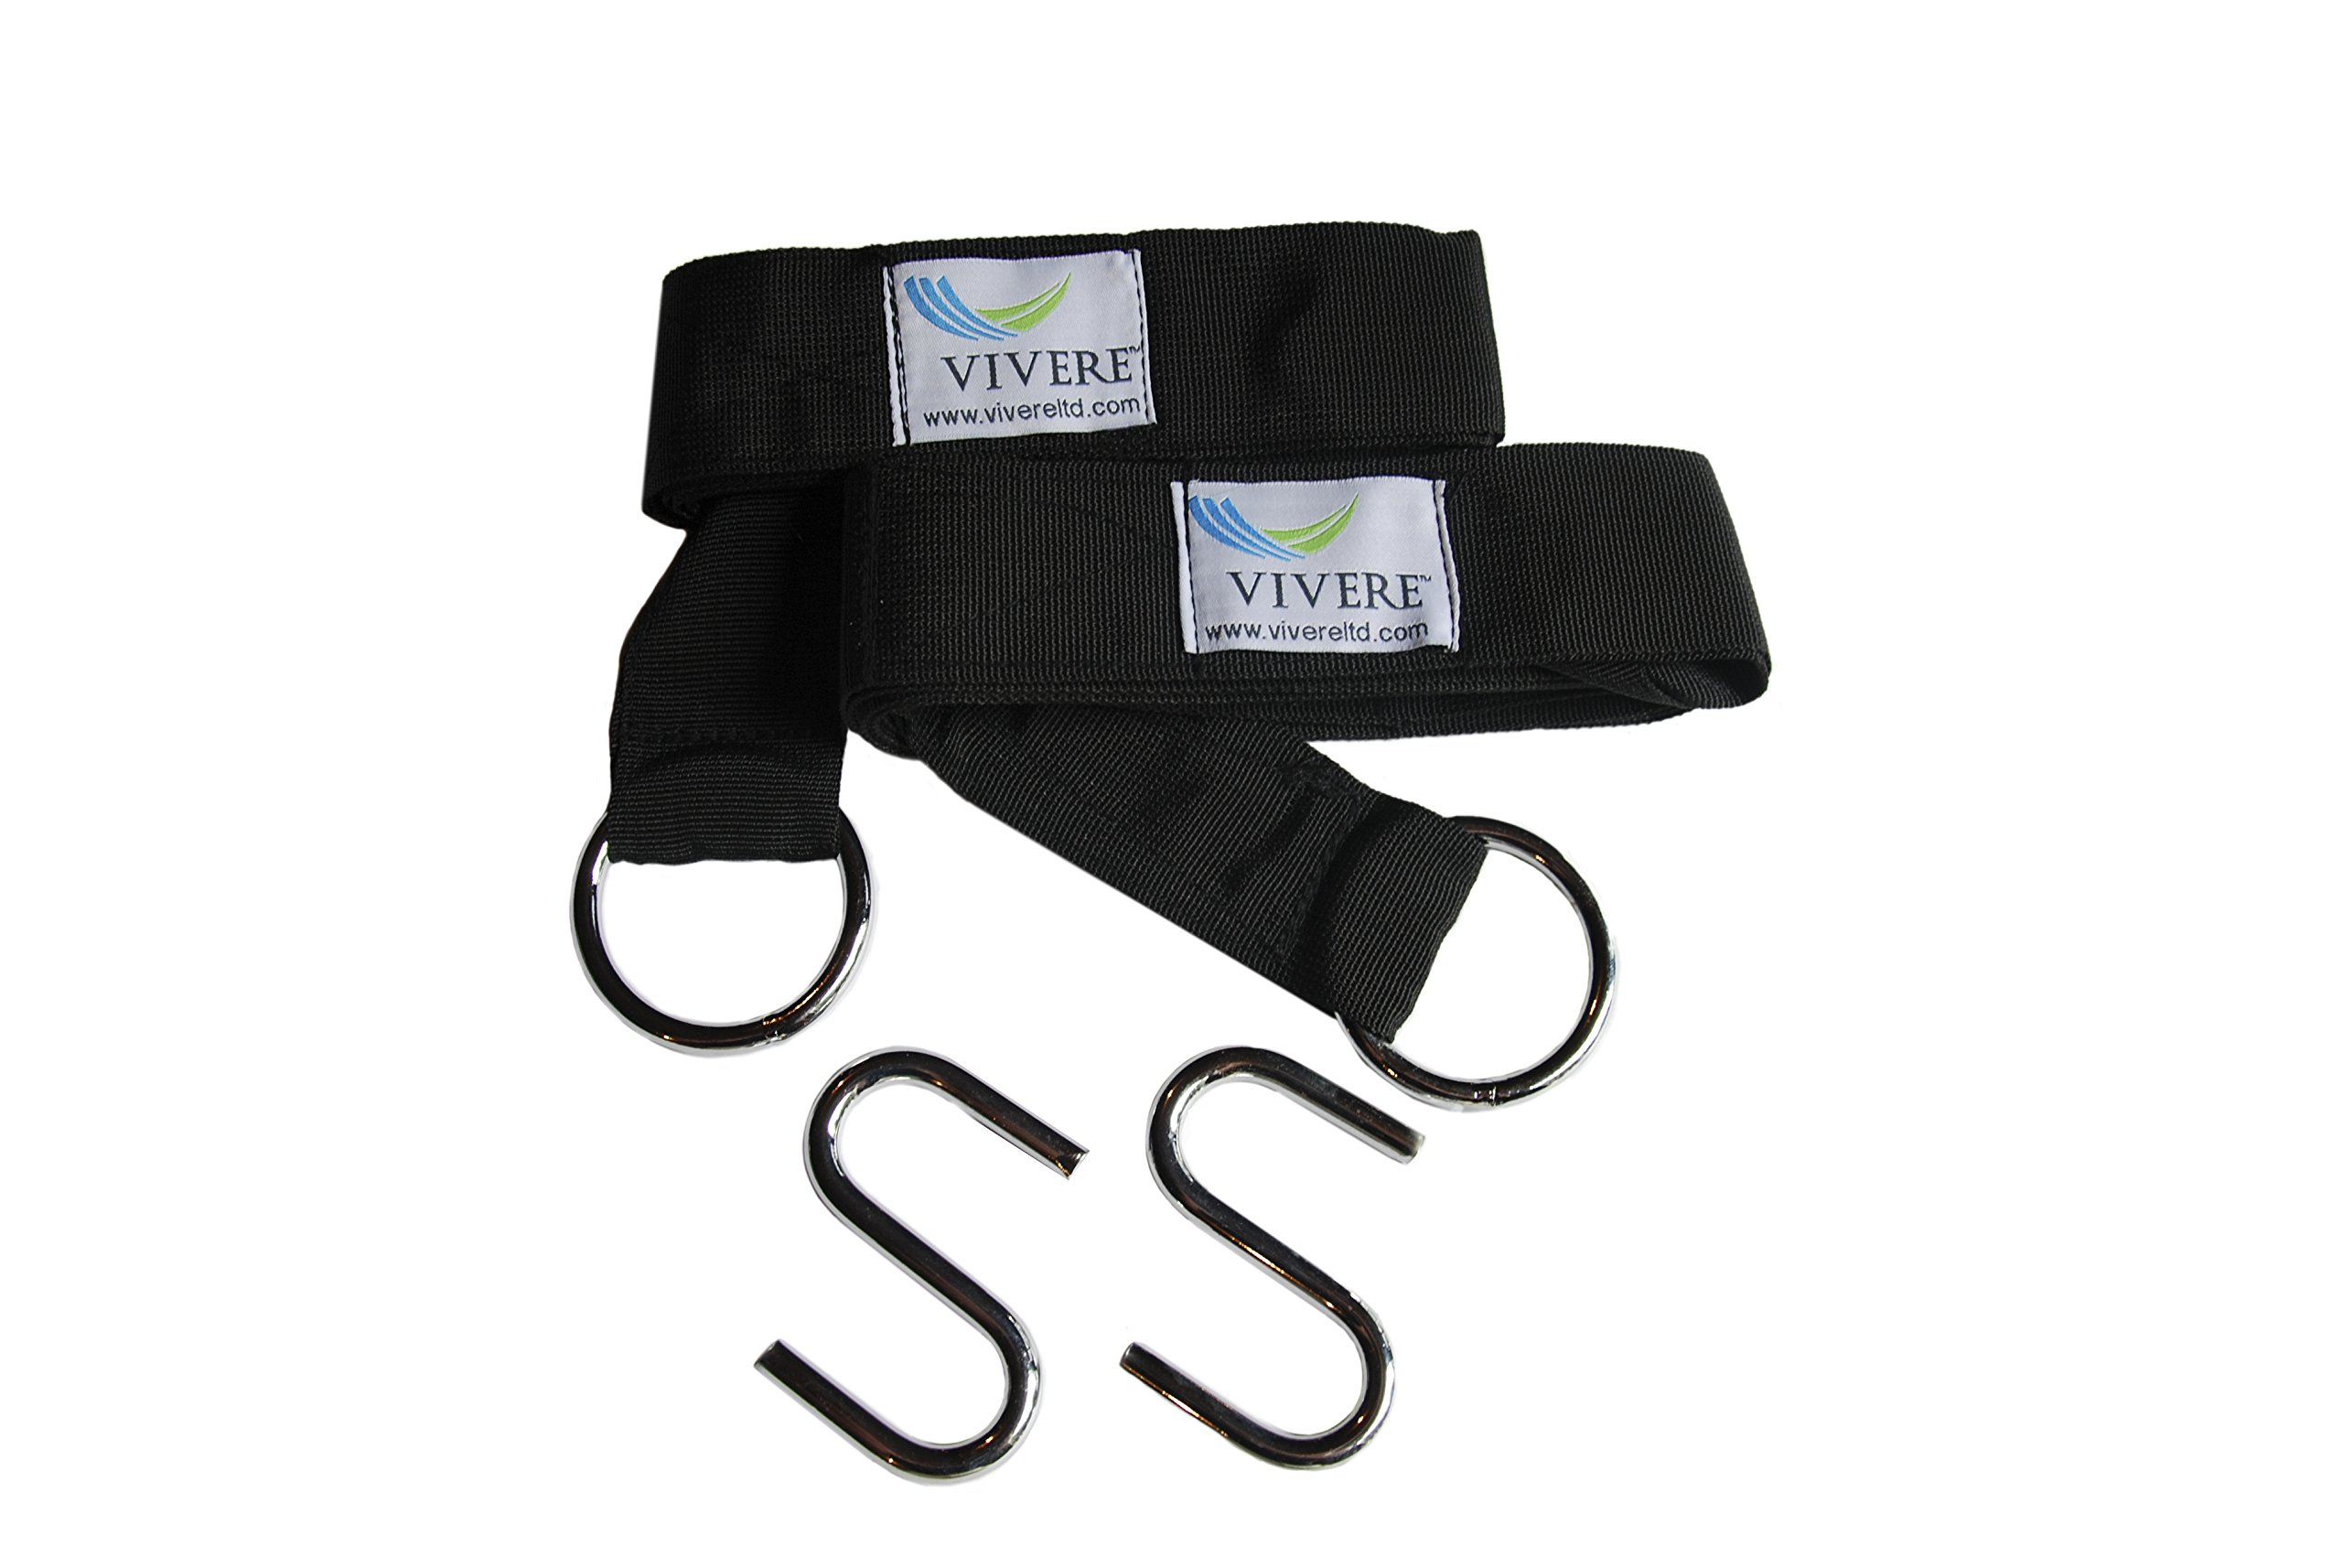 Vivere Eco-Friendly Tree Straps (2 Pack) by Michael Anthony